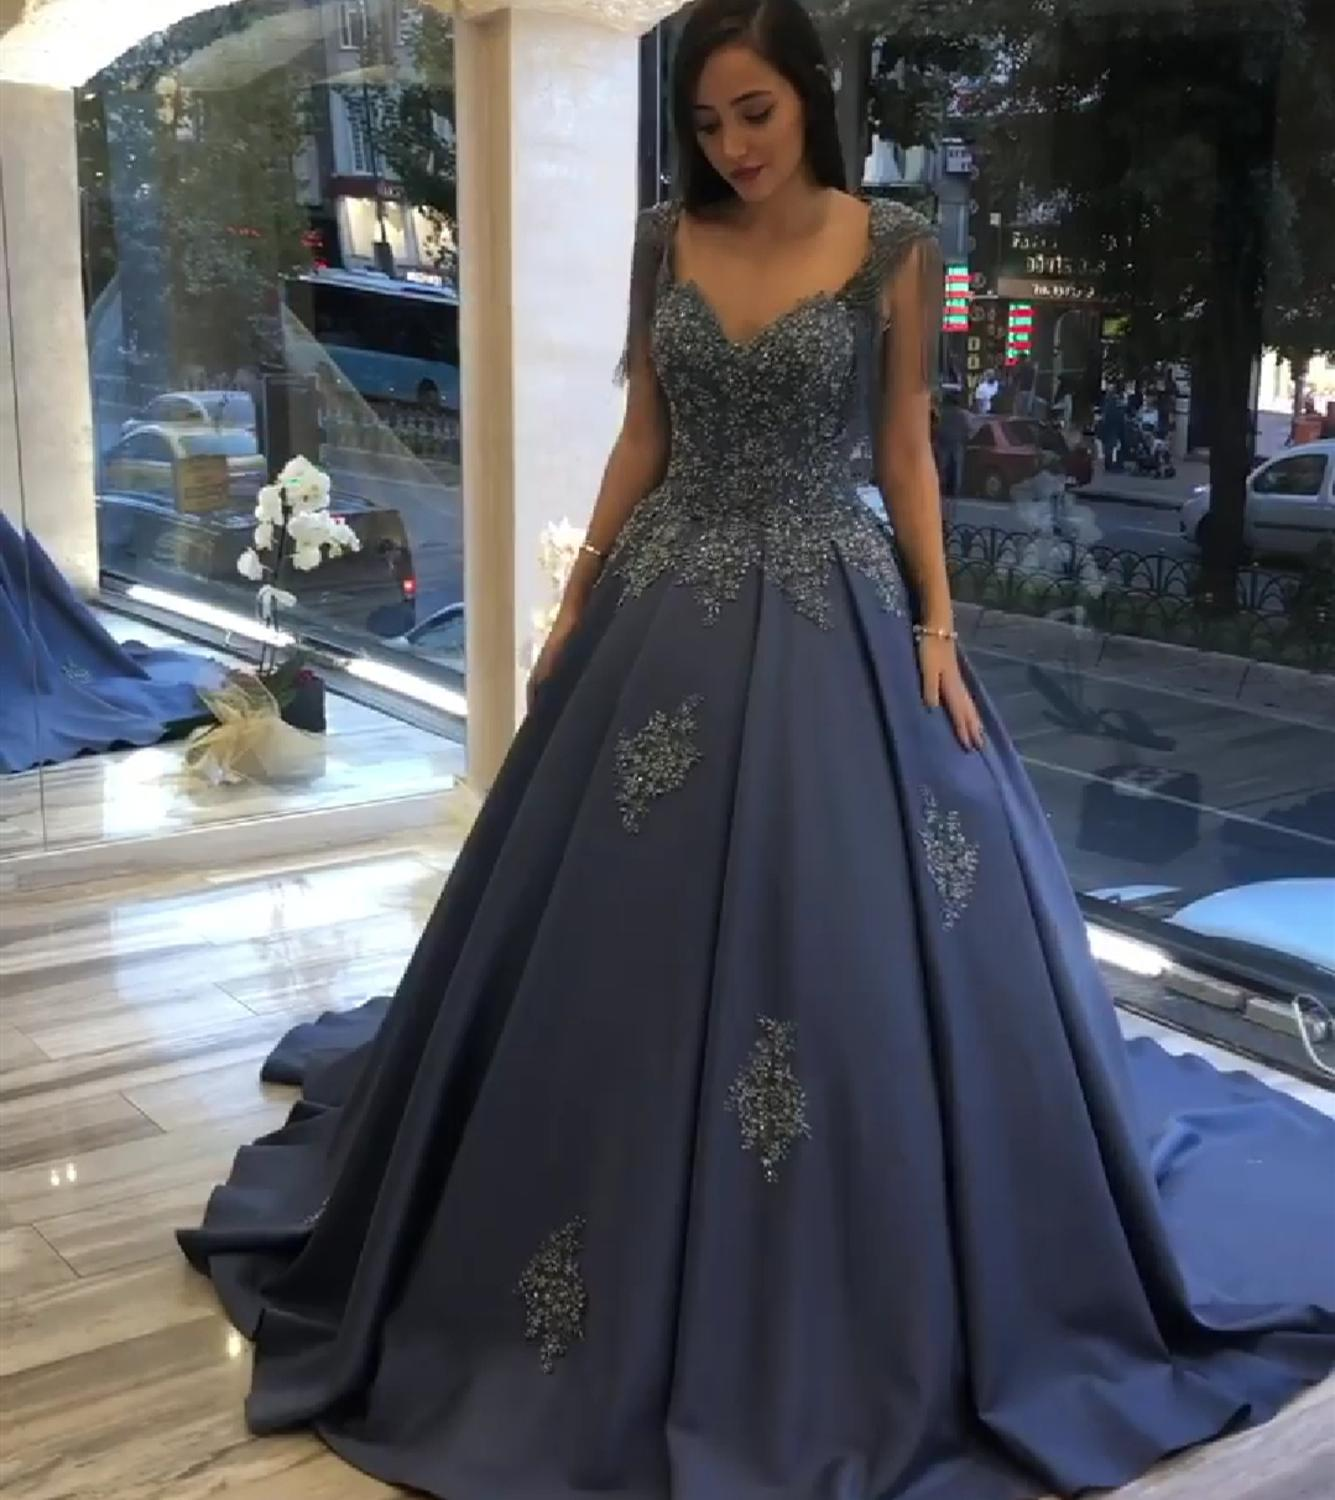 2019 New Muslim Dress Arabic Dubai Gown Satin Couture Muslim Evening Dresses Caps Sleeve A Line Lace Appliques Special Gowns